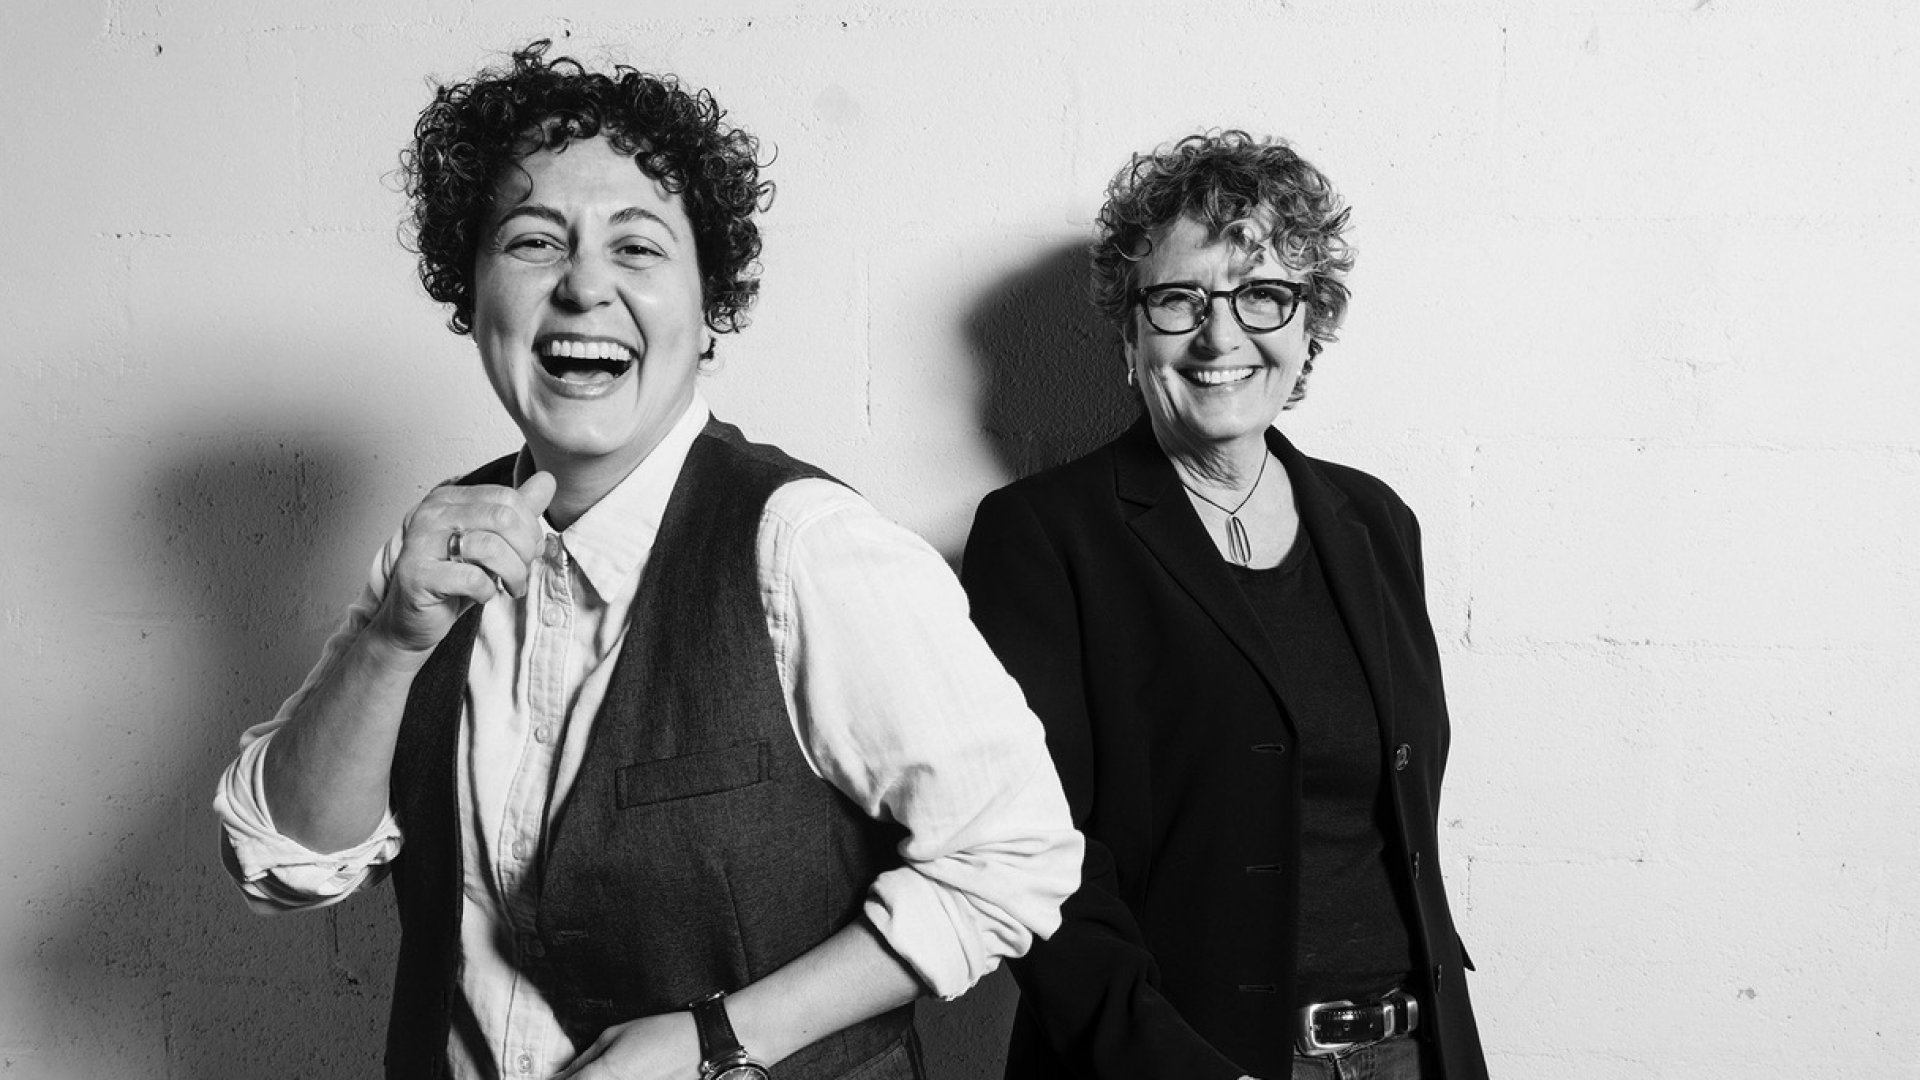 Naomi Gonzalez (left) and Fran Dunaway, co-founders of TomboyX.